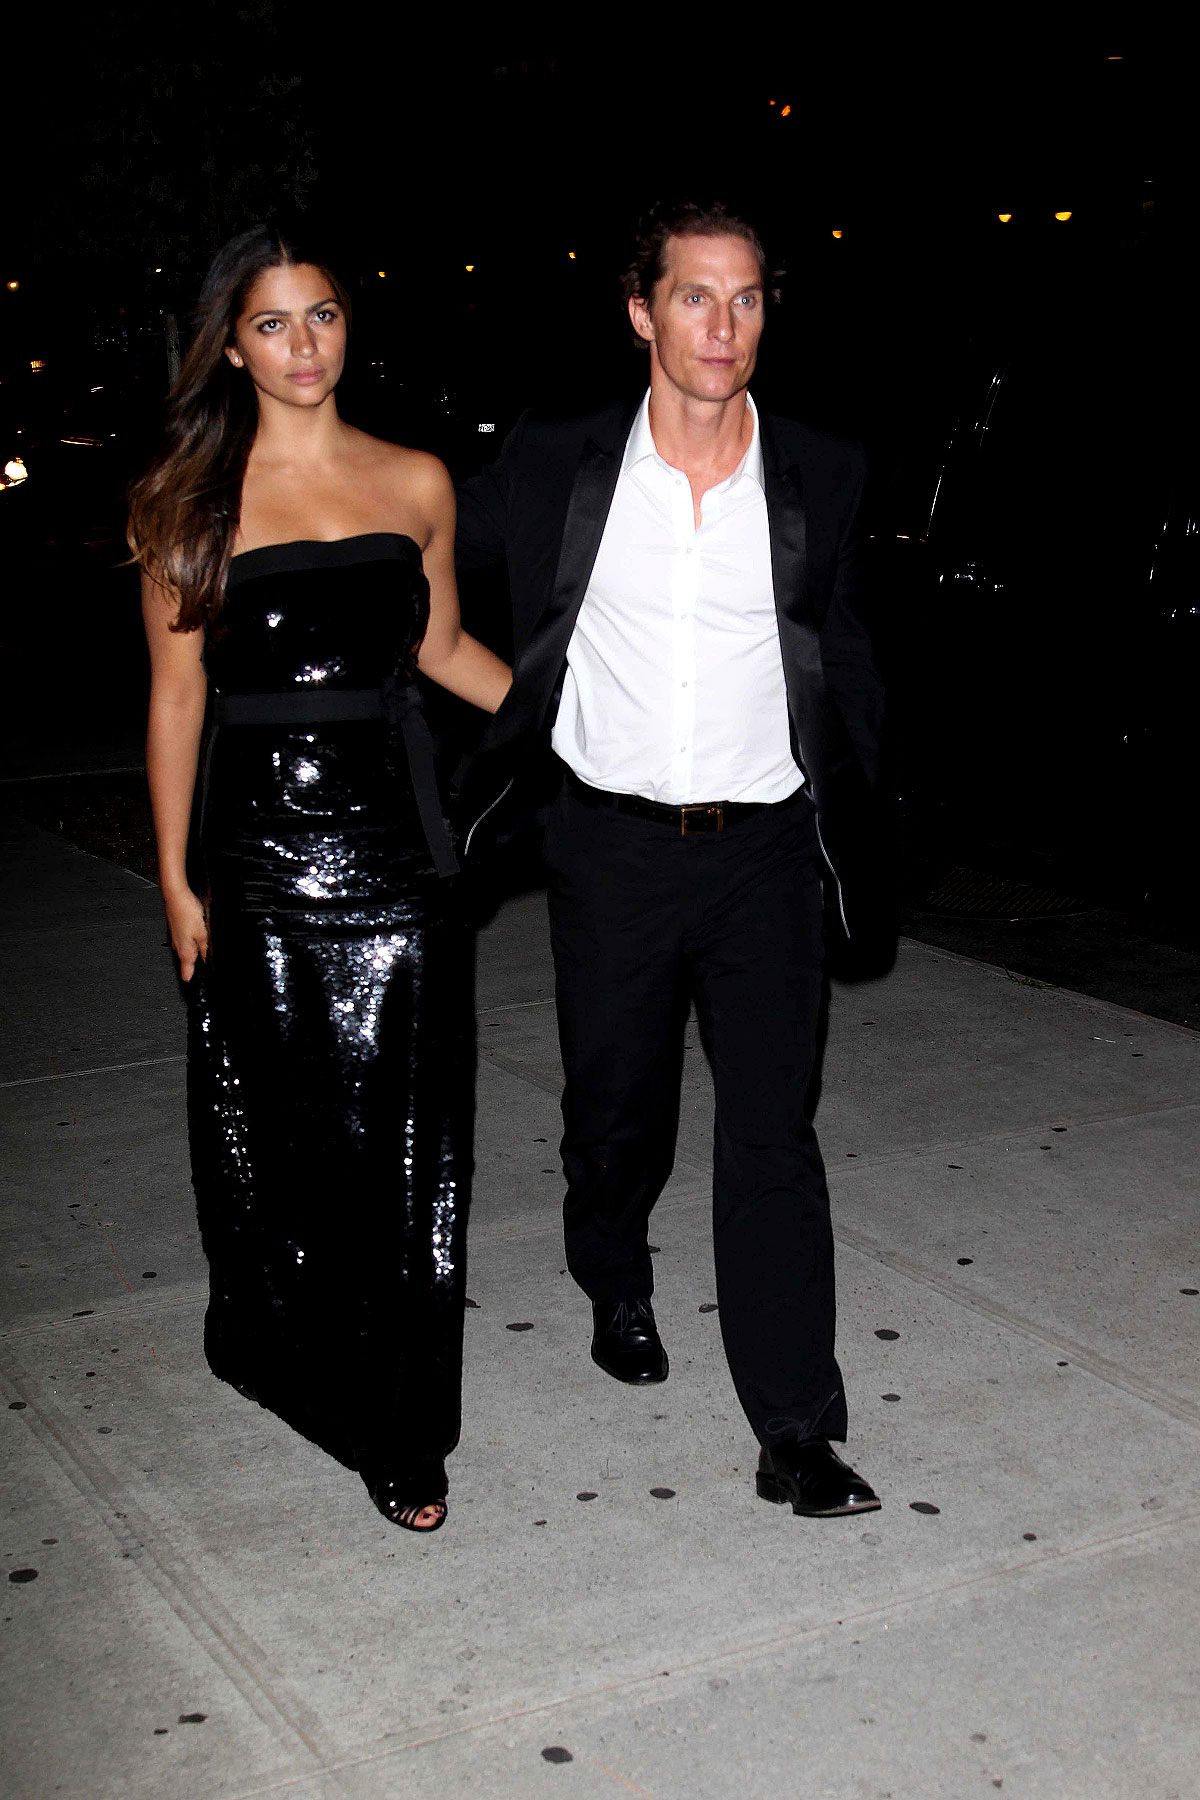 Matthew McConaughey & Camilla Alves Get Shiny For A Night On The Town (PHOTOS)